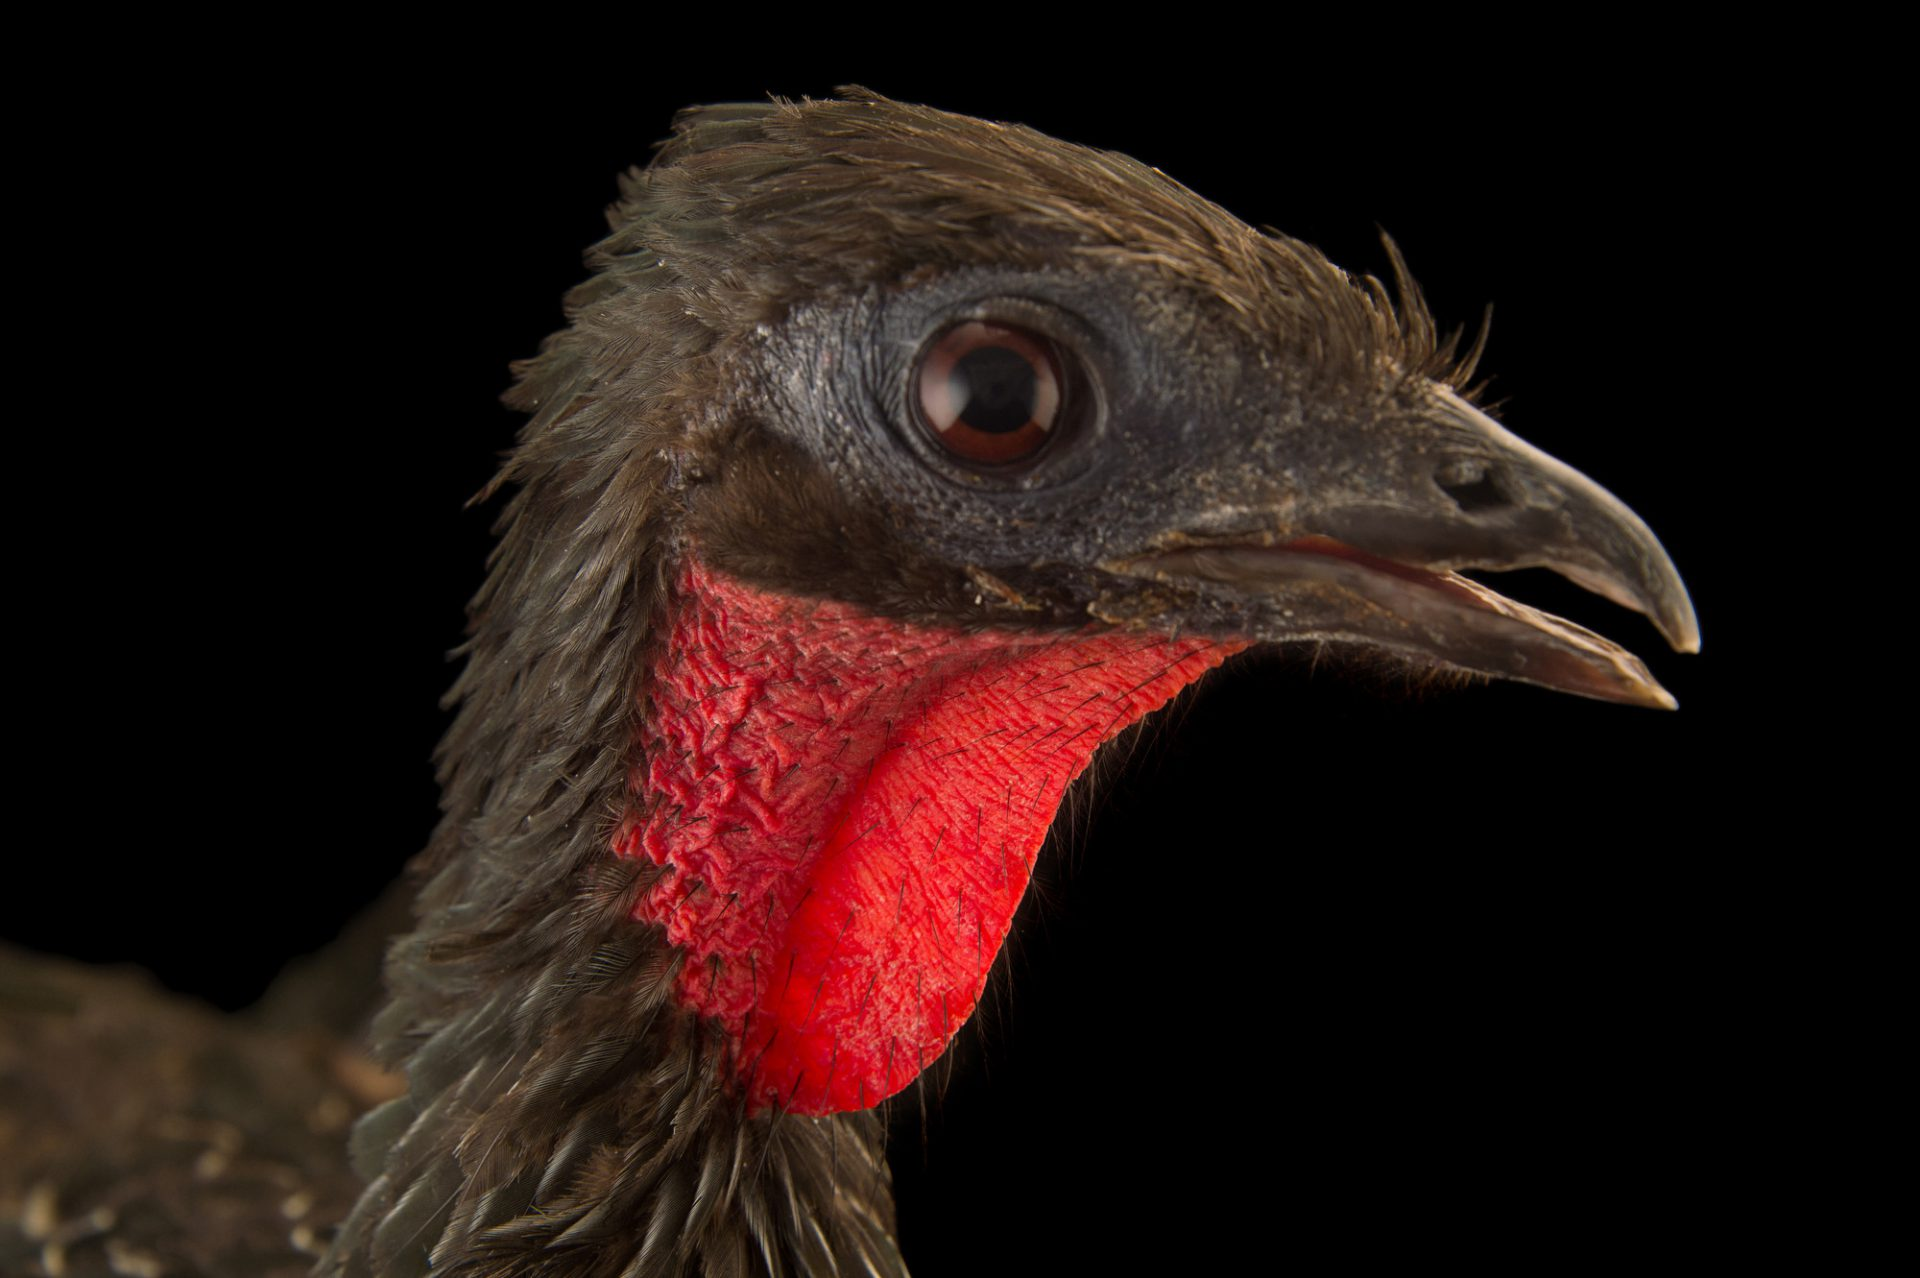 Picture of a Spix's guan (Penelope jacquacu) at the National Aviary breeding center.